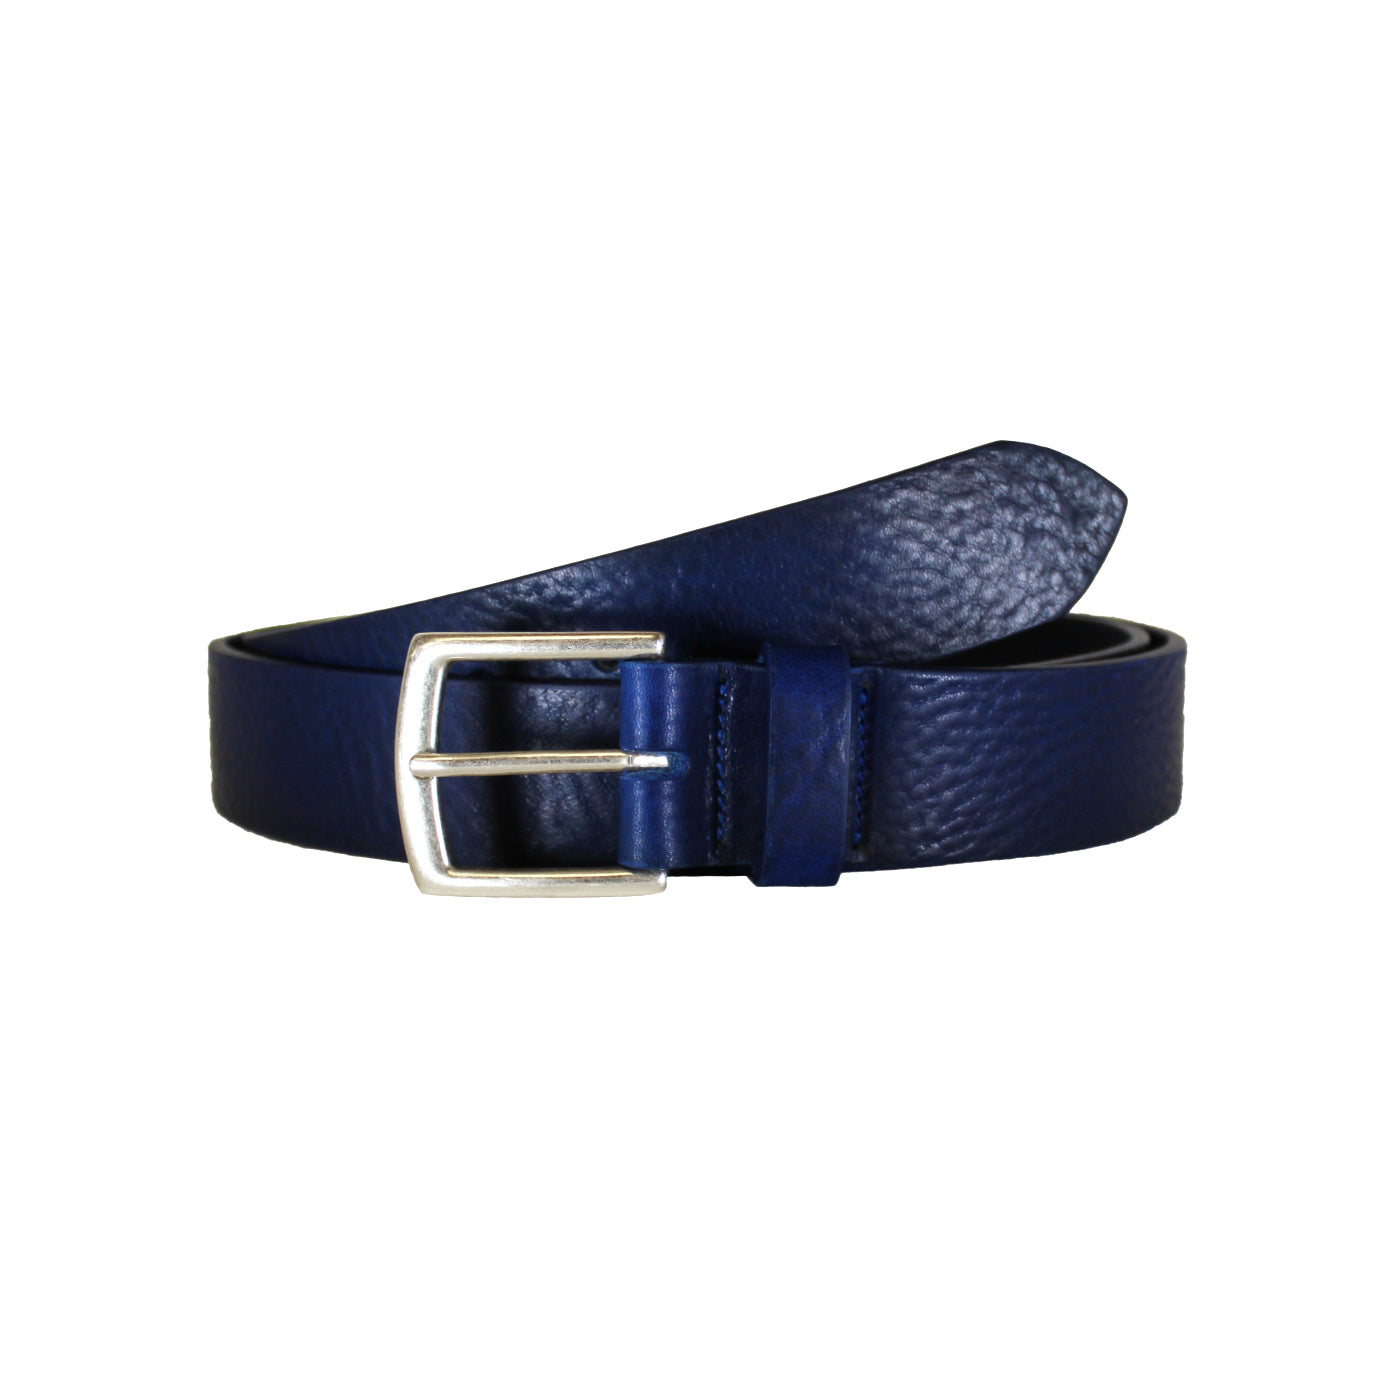 "Blue Rugged Vegetable Tanned Leather Belt (Width 35 mm - 1 ½"")"